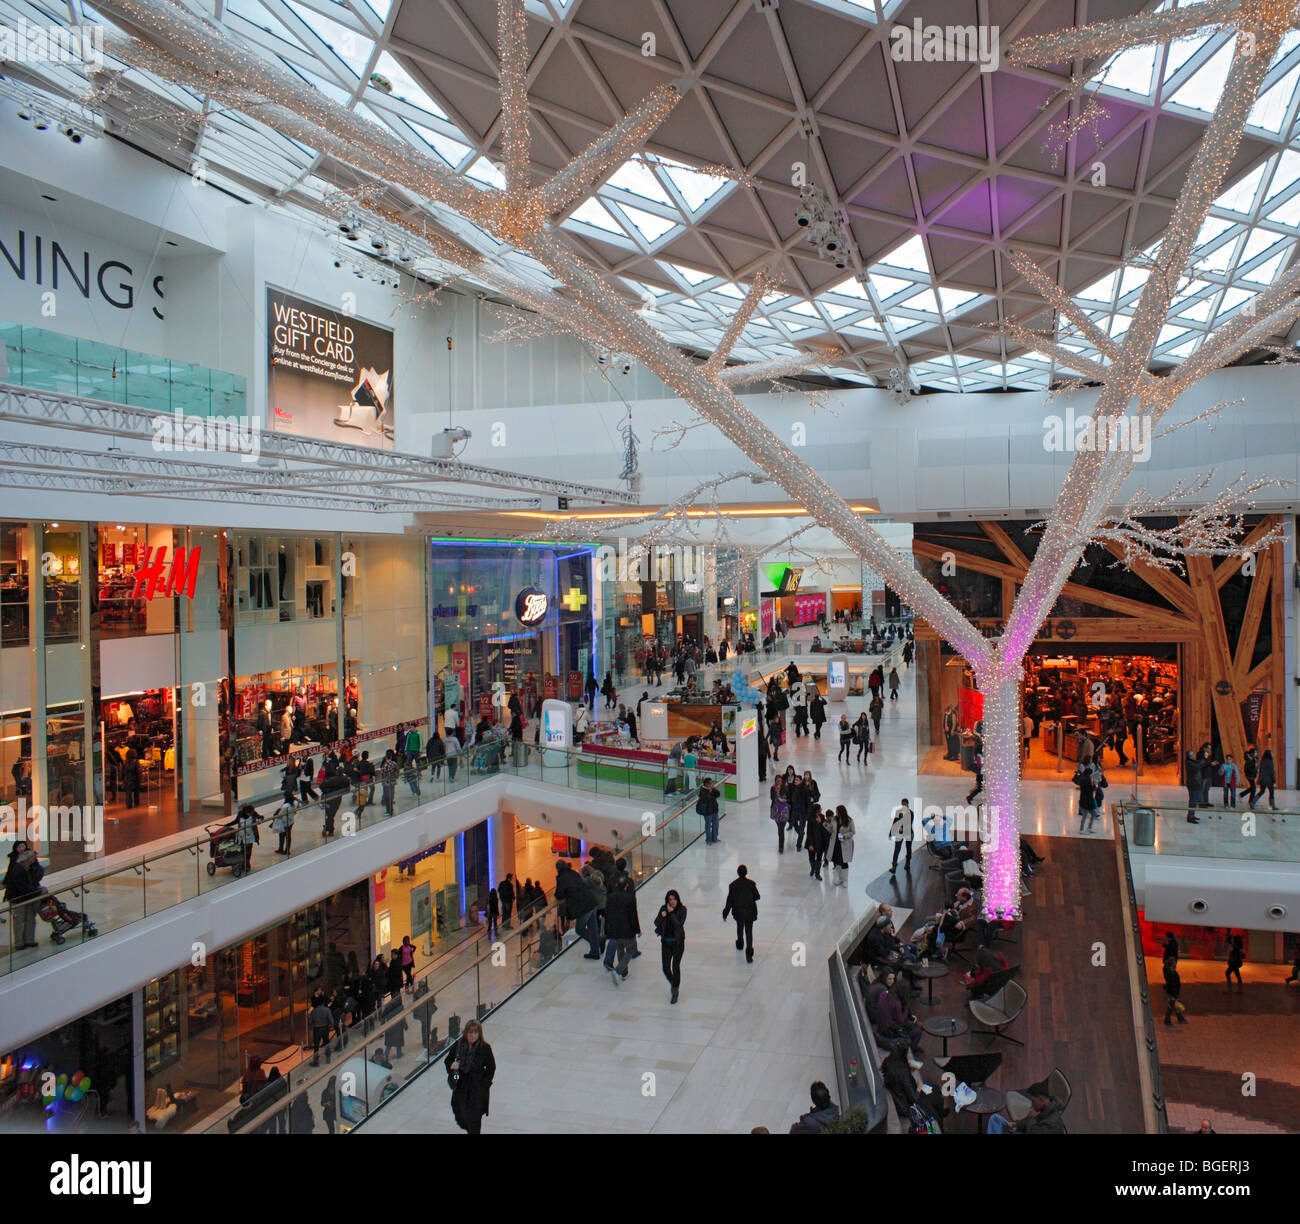 Westfield Shopping Centre. Stock Photo